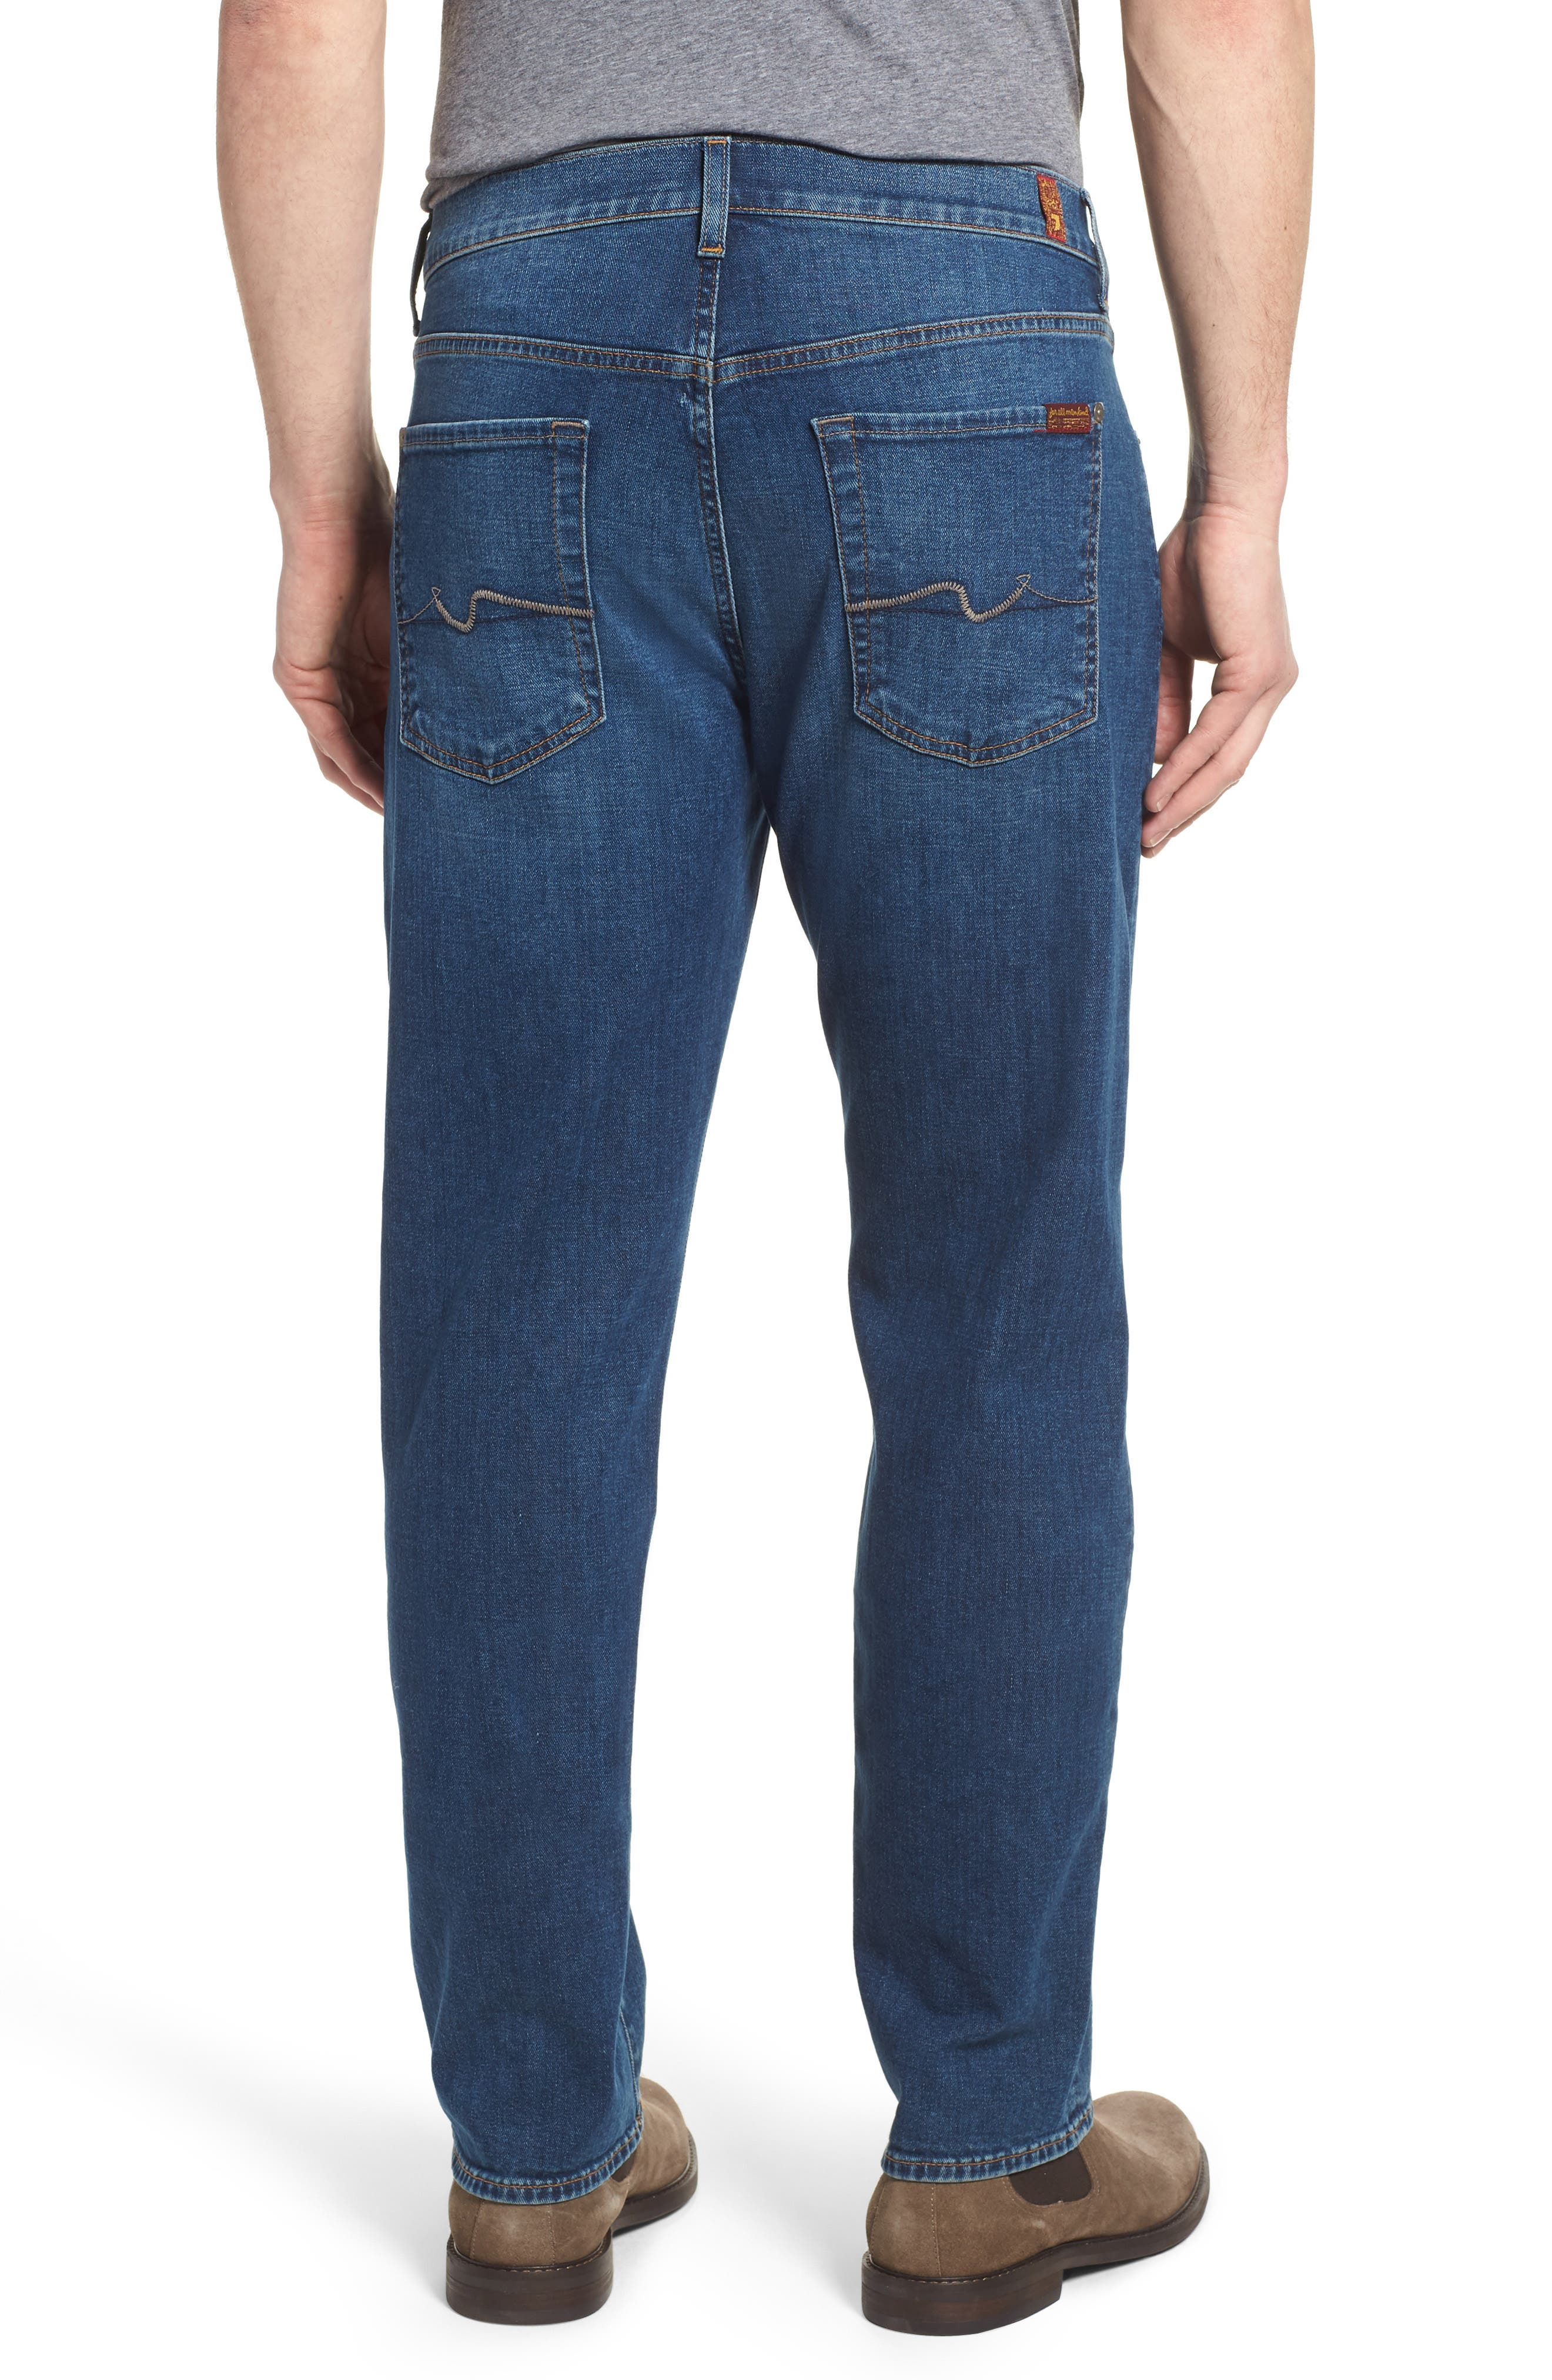 Austyn Relaxed Fit Jeans,                             Alternate thumbnail 2, color,                             Oasis